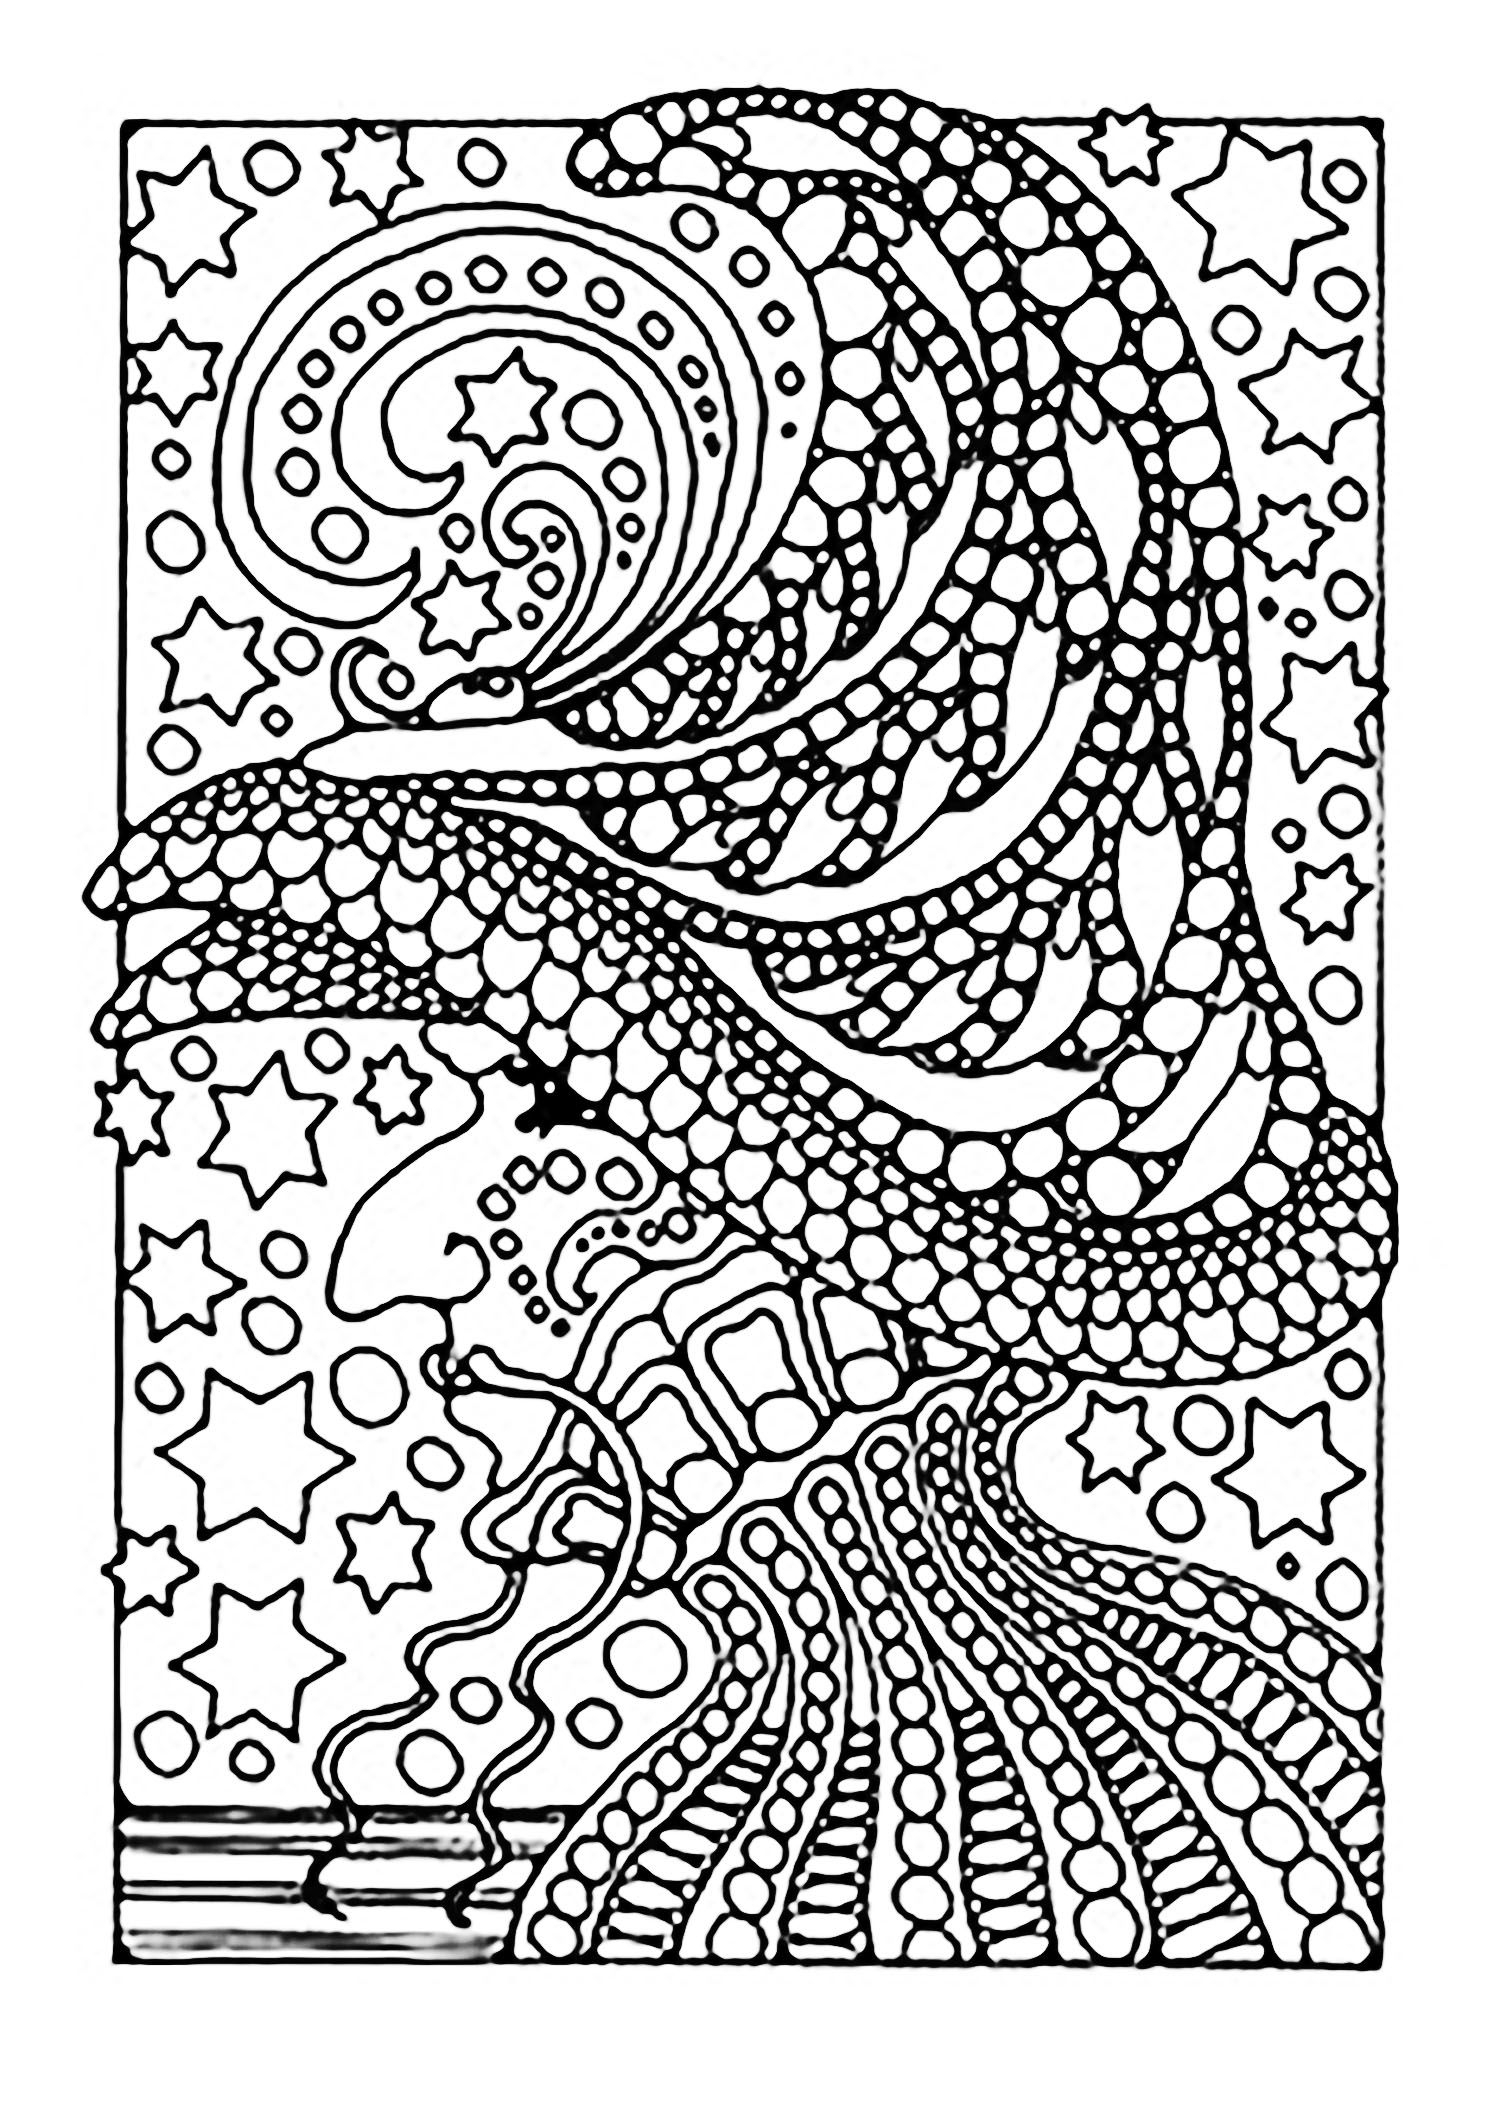 Best Abstract Coloring Pages to and Print for Free Free Collection Of Snowflake Coloring Pages for Adults Coloring Pages Inspiring Printable